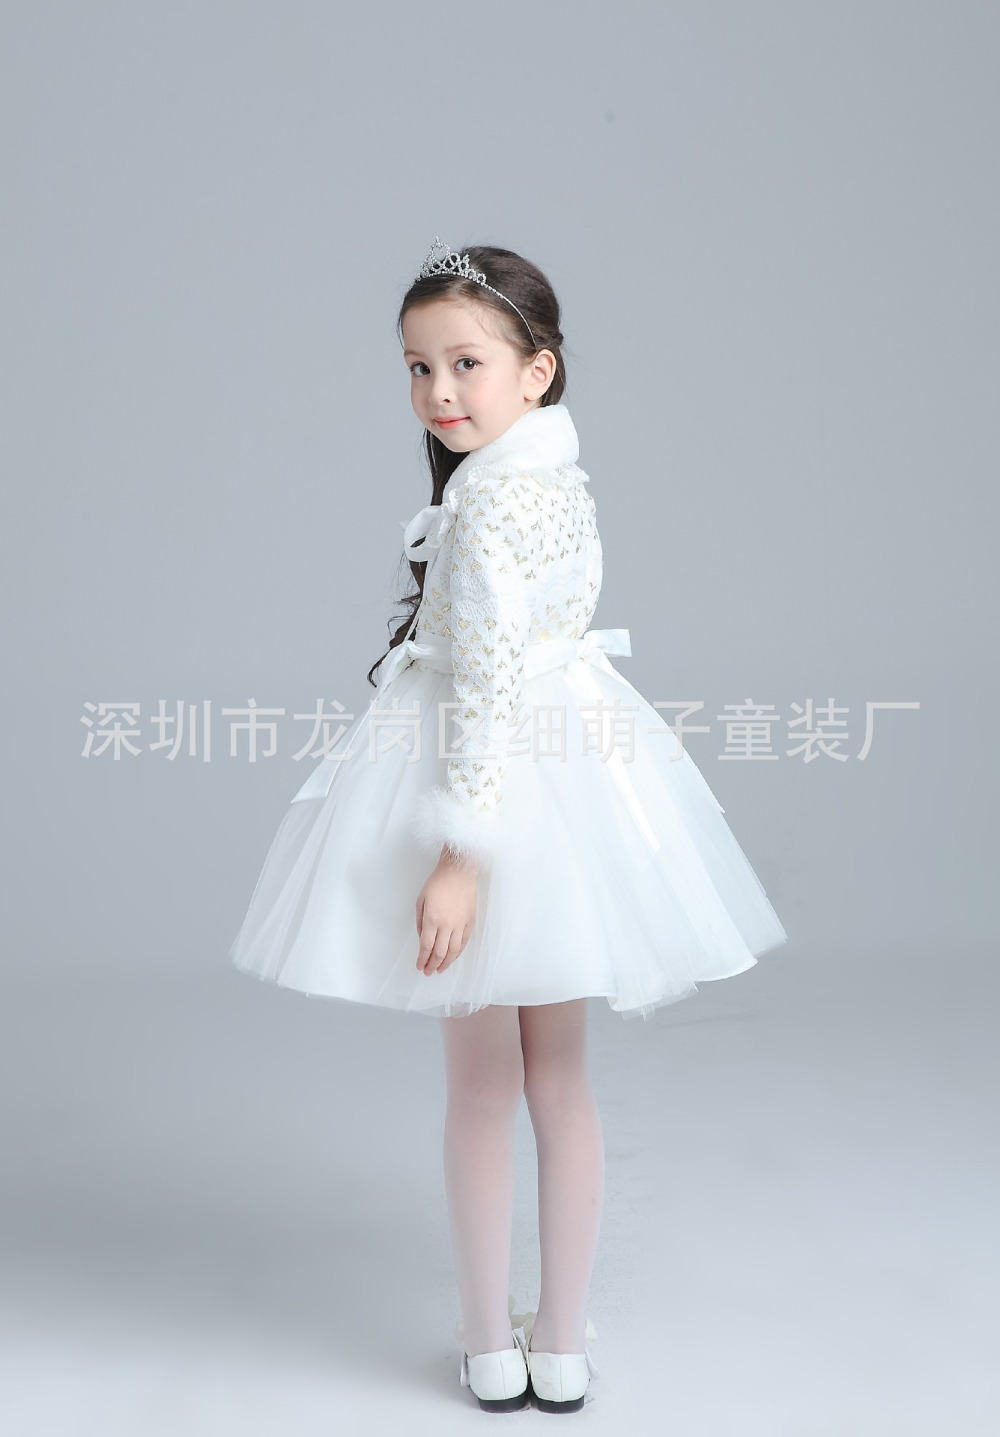 Famous Kid Bridesmaid Dresses Image Collection - All Wedding Dresses ...